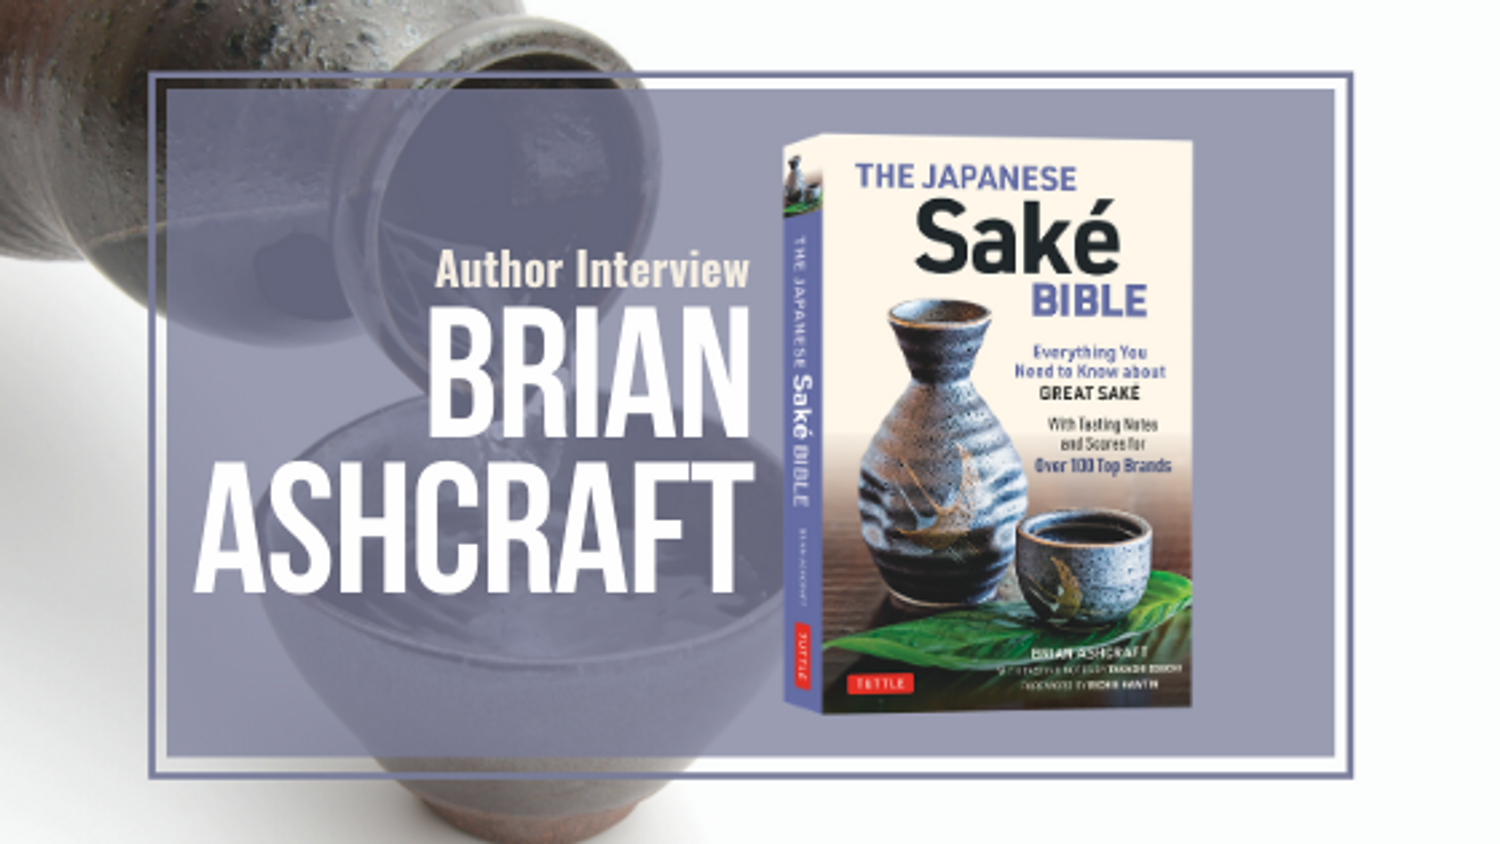 Author Interview: Brian Ashcraft